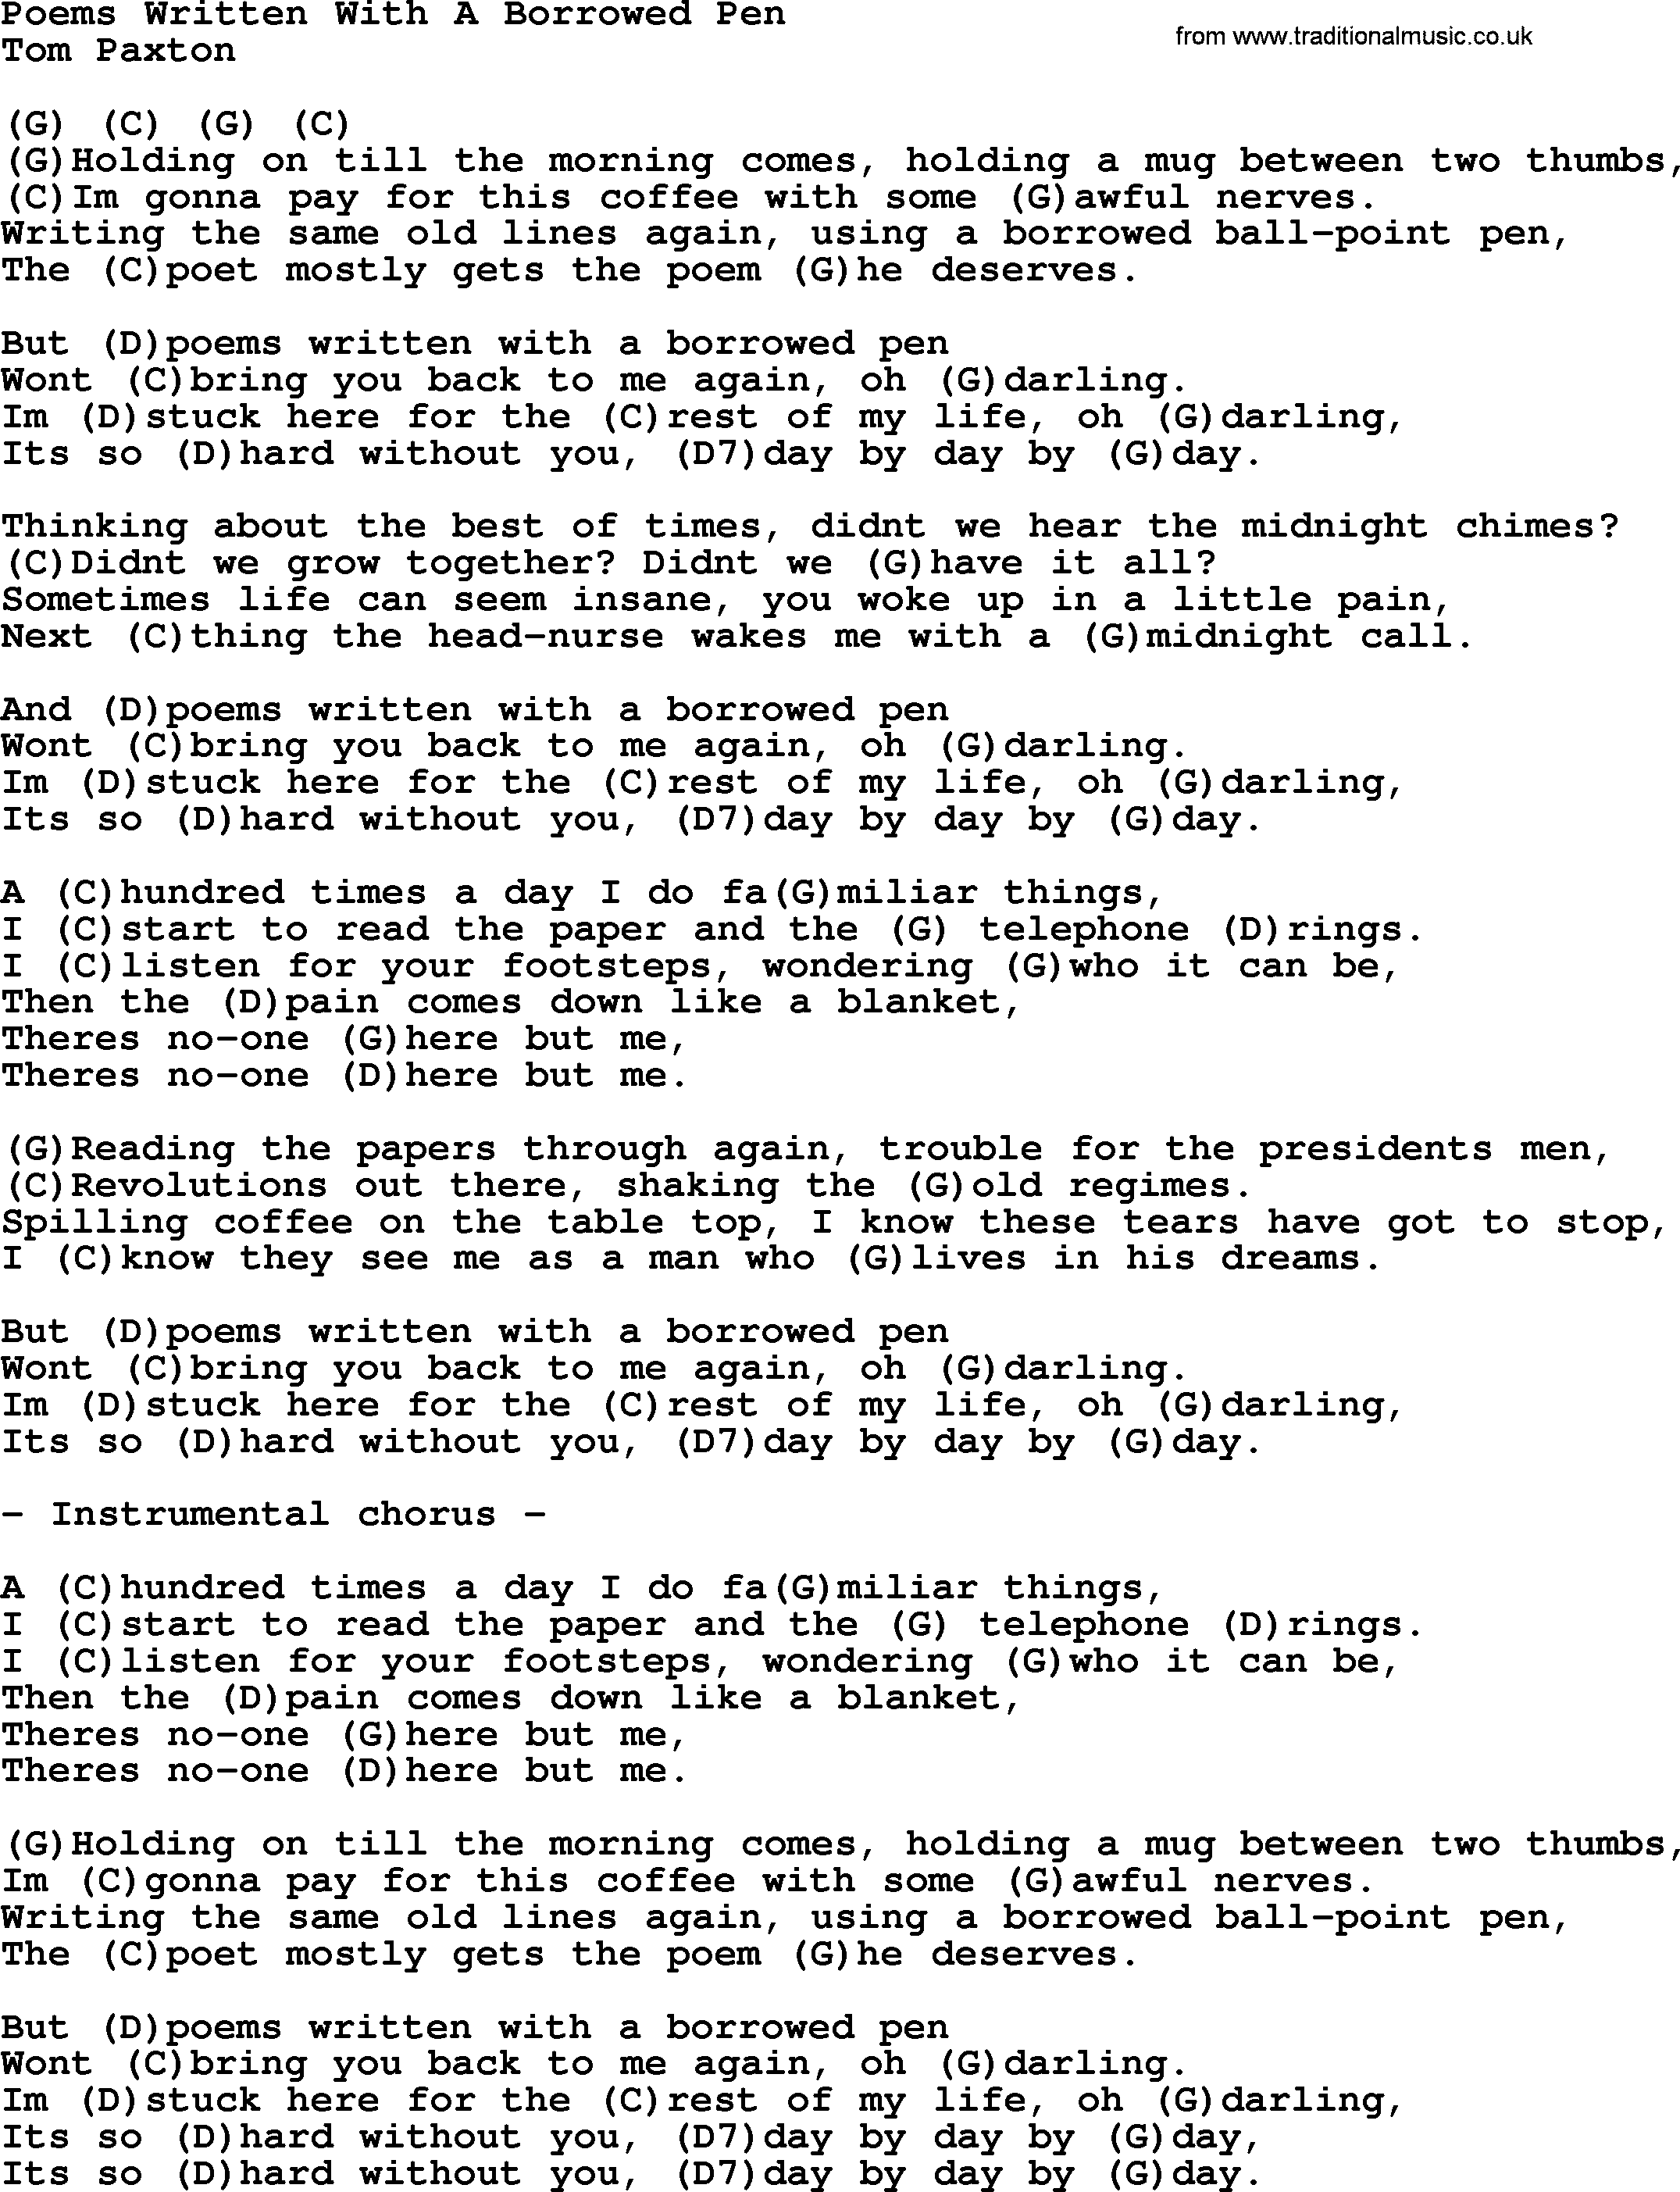 Poems written with a borrowed pen by tom paxton lyrics and chords tom paxton song poems written with a borrowed pen lyrics and chords hexwebz Image collections